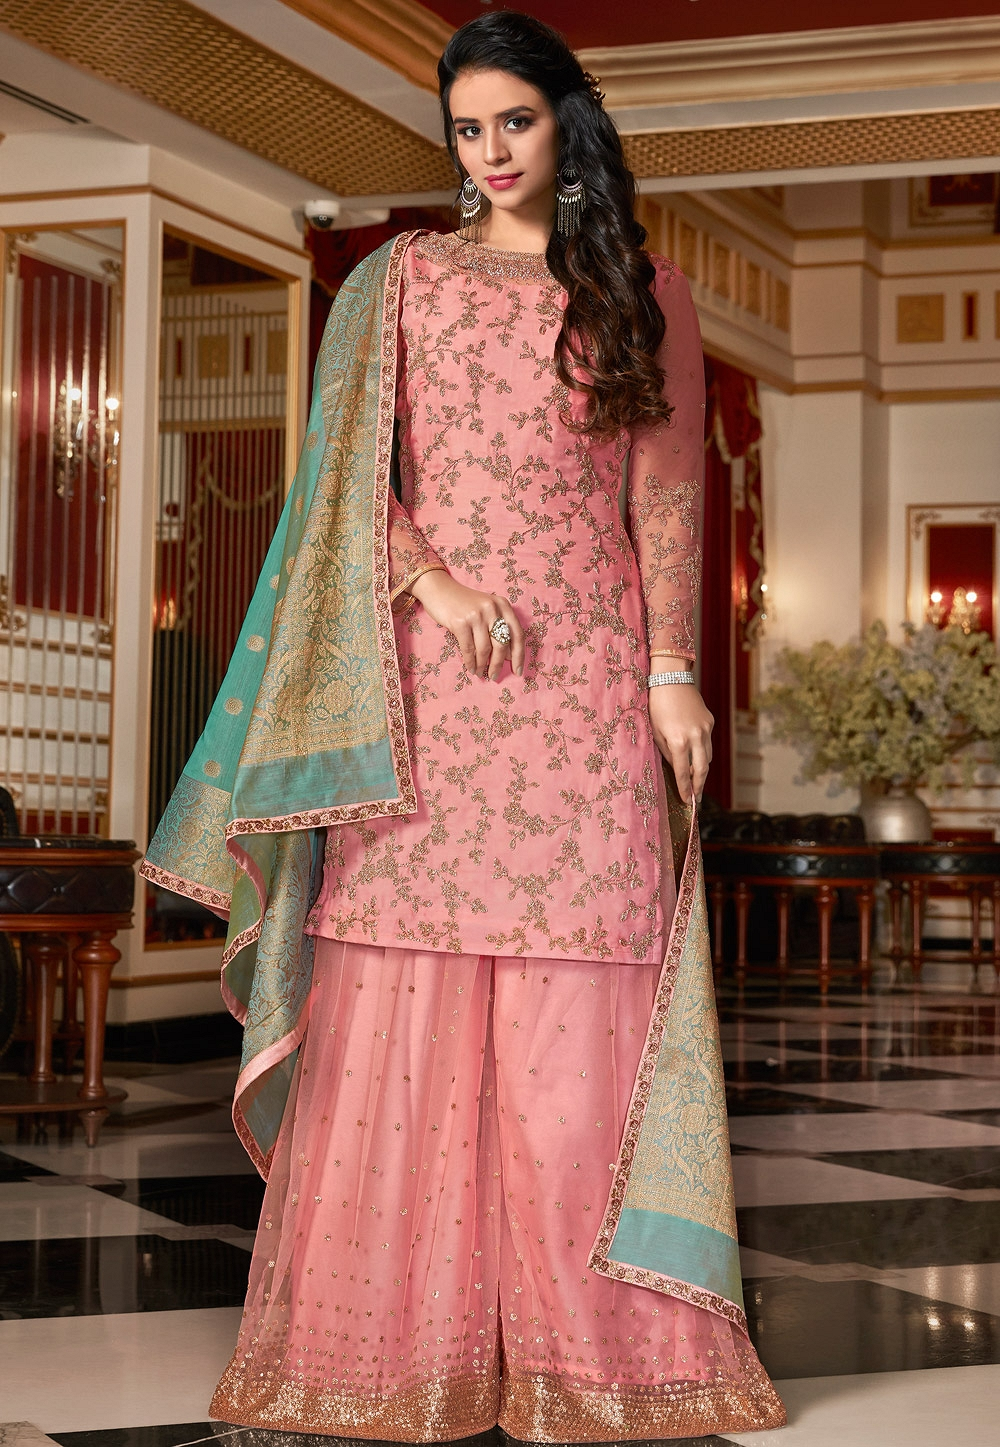 bea075e831 More Views. Light Pink Designer Satin Georgette Embroidered Sharara Style  ...